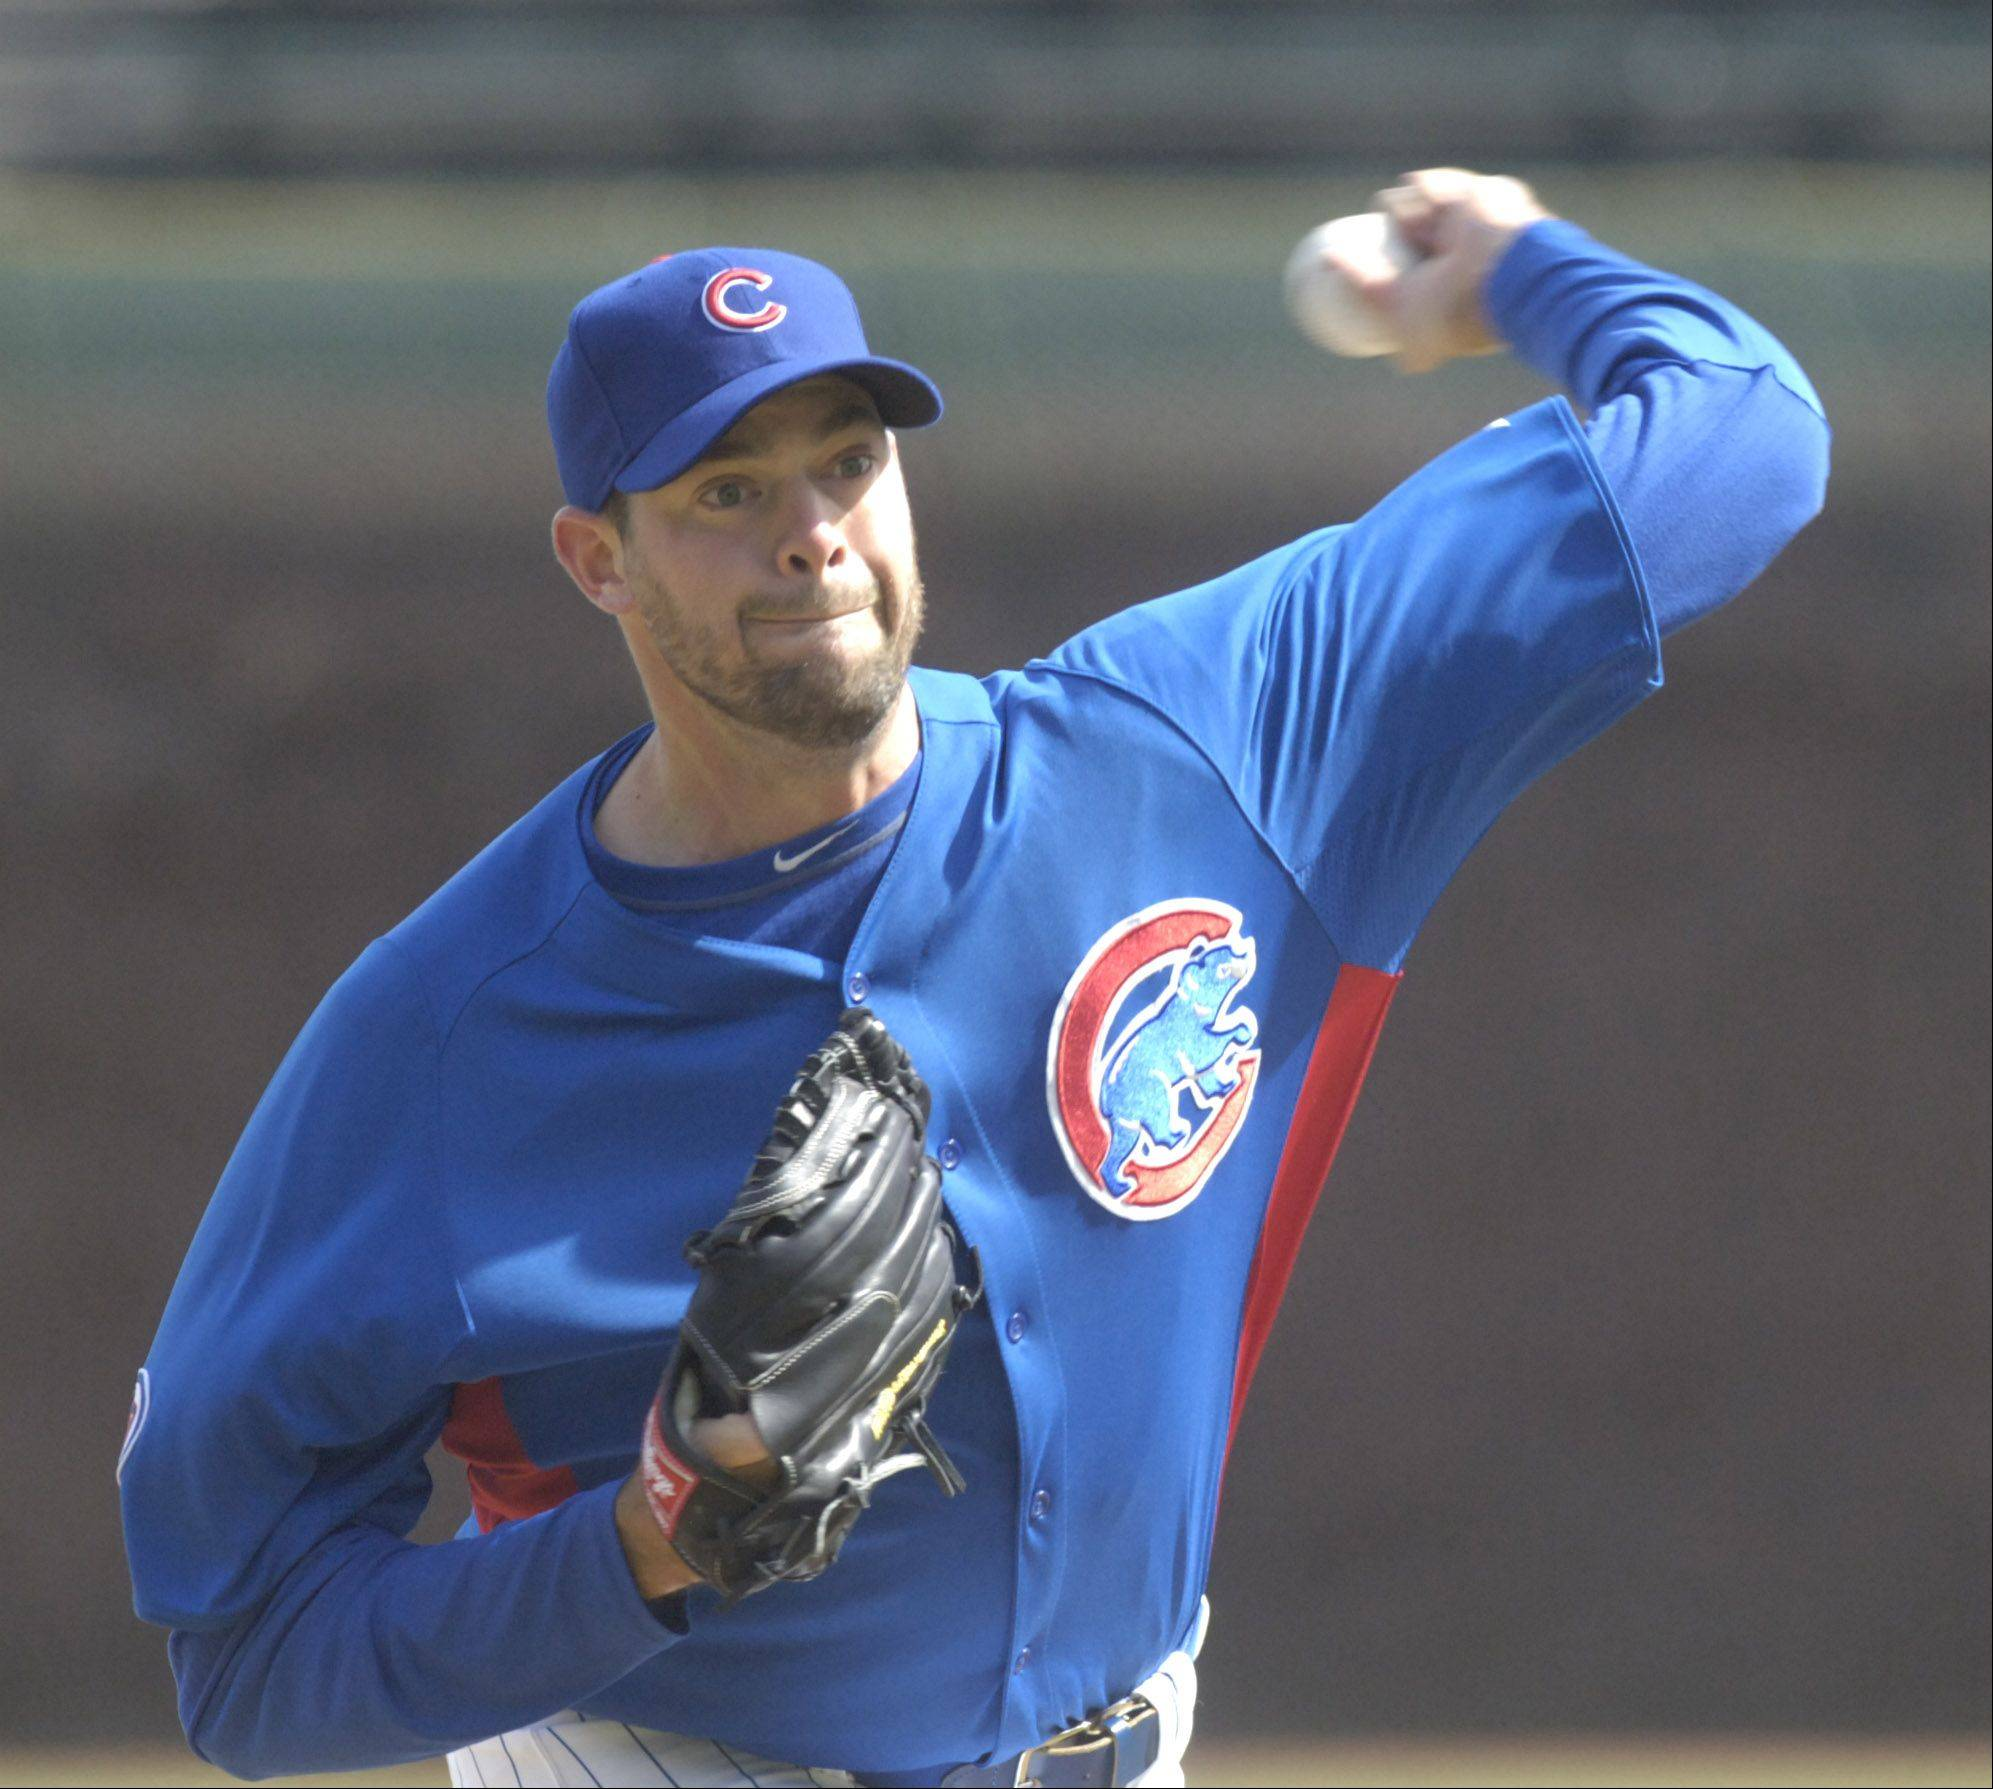 Cubs reliever Sean Marshall, who is in the last year of contract that will pay him $3.1 million this season, was traded to Cincinnati for three players. The deal was completed Friday.